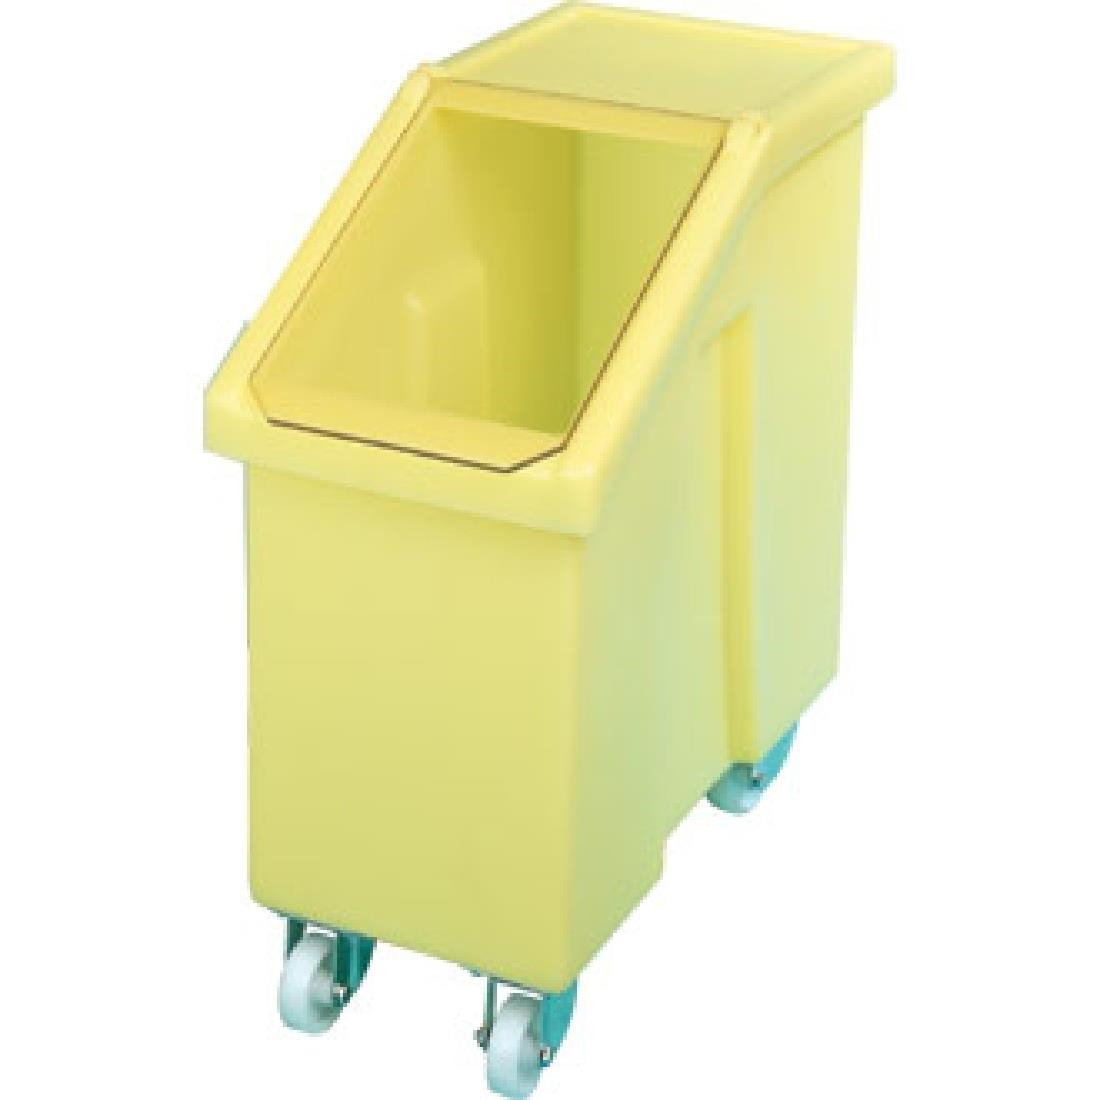 Image of Mobileingredient Bin 65Ltr Yellow